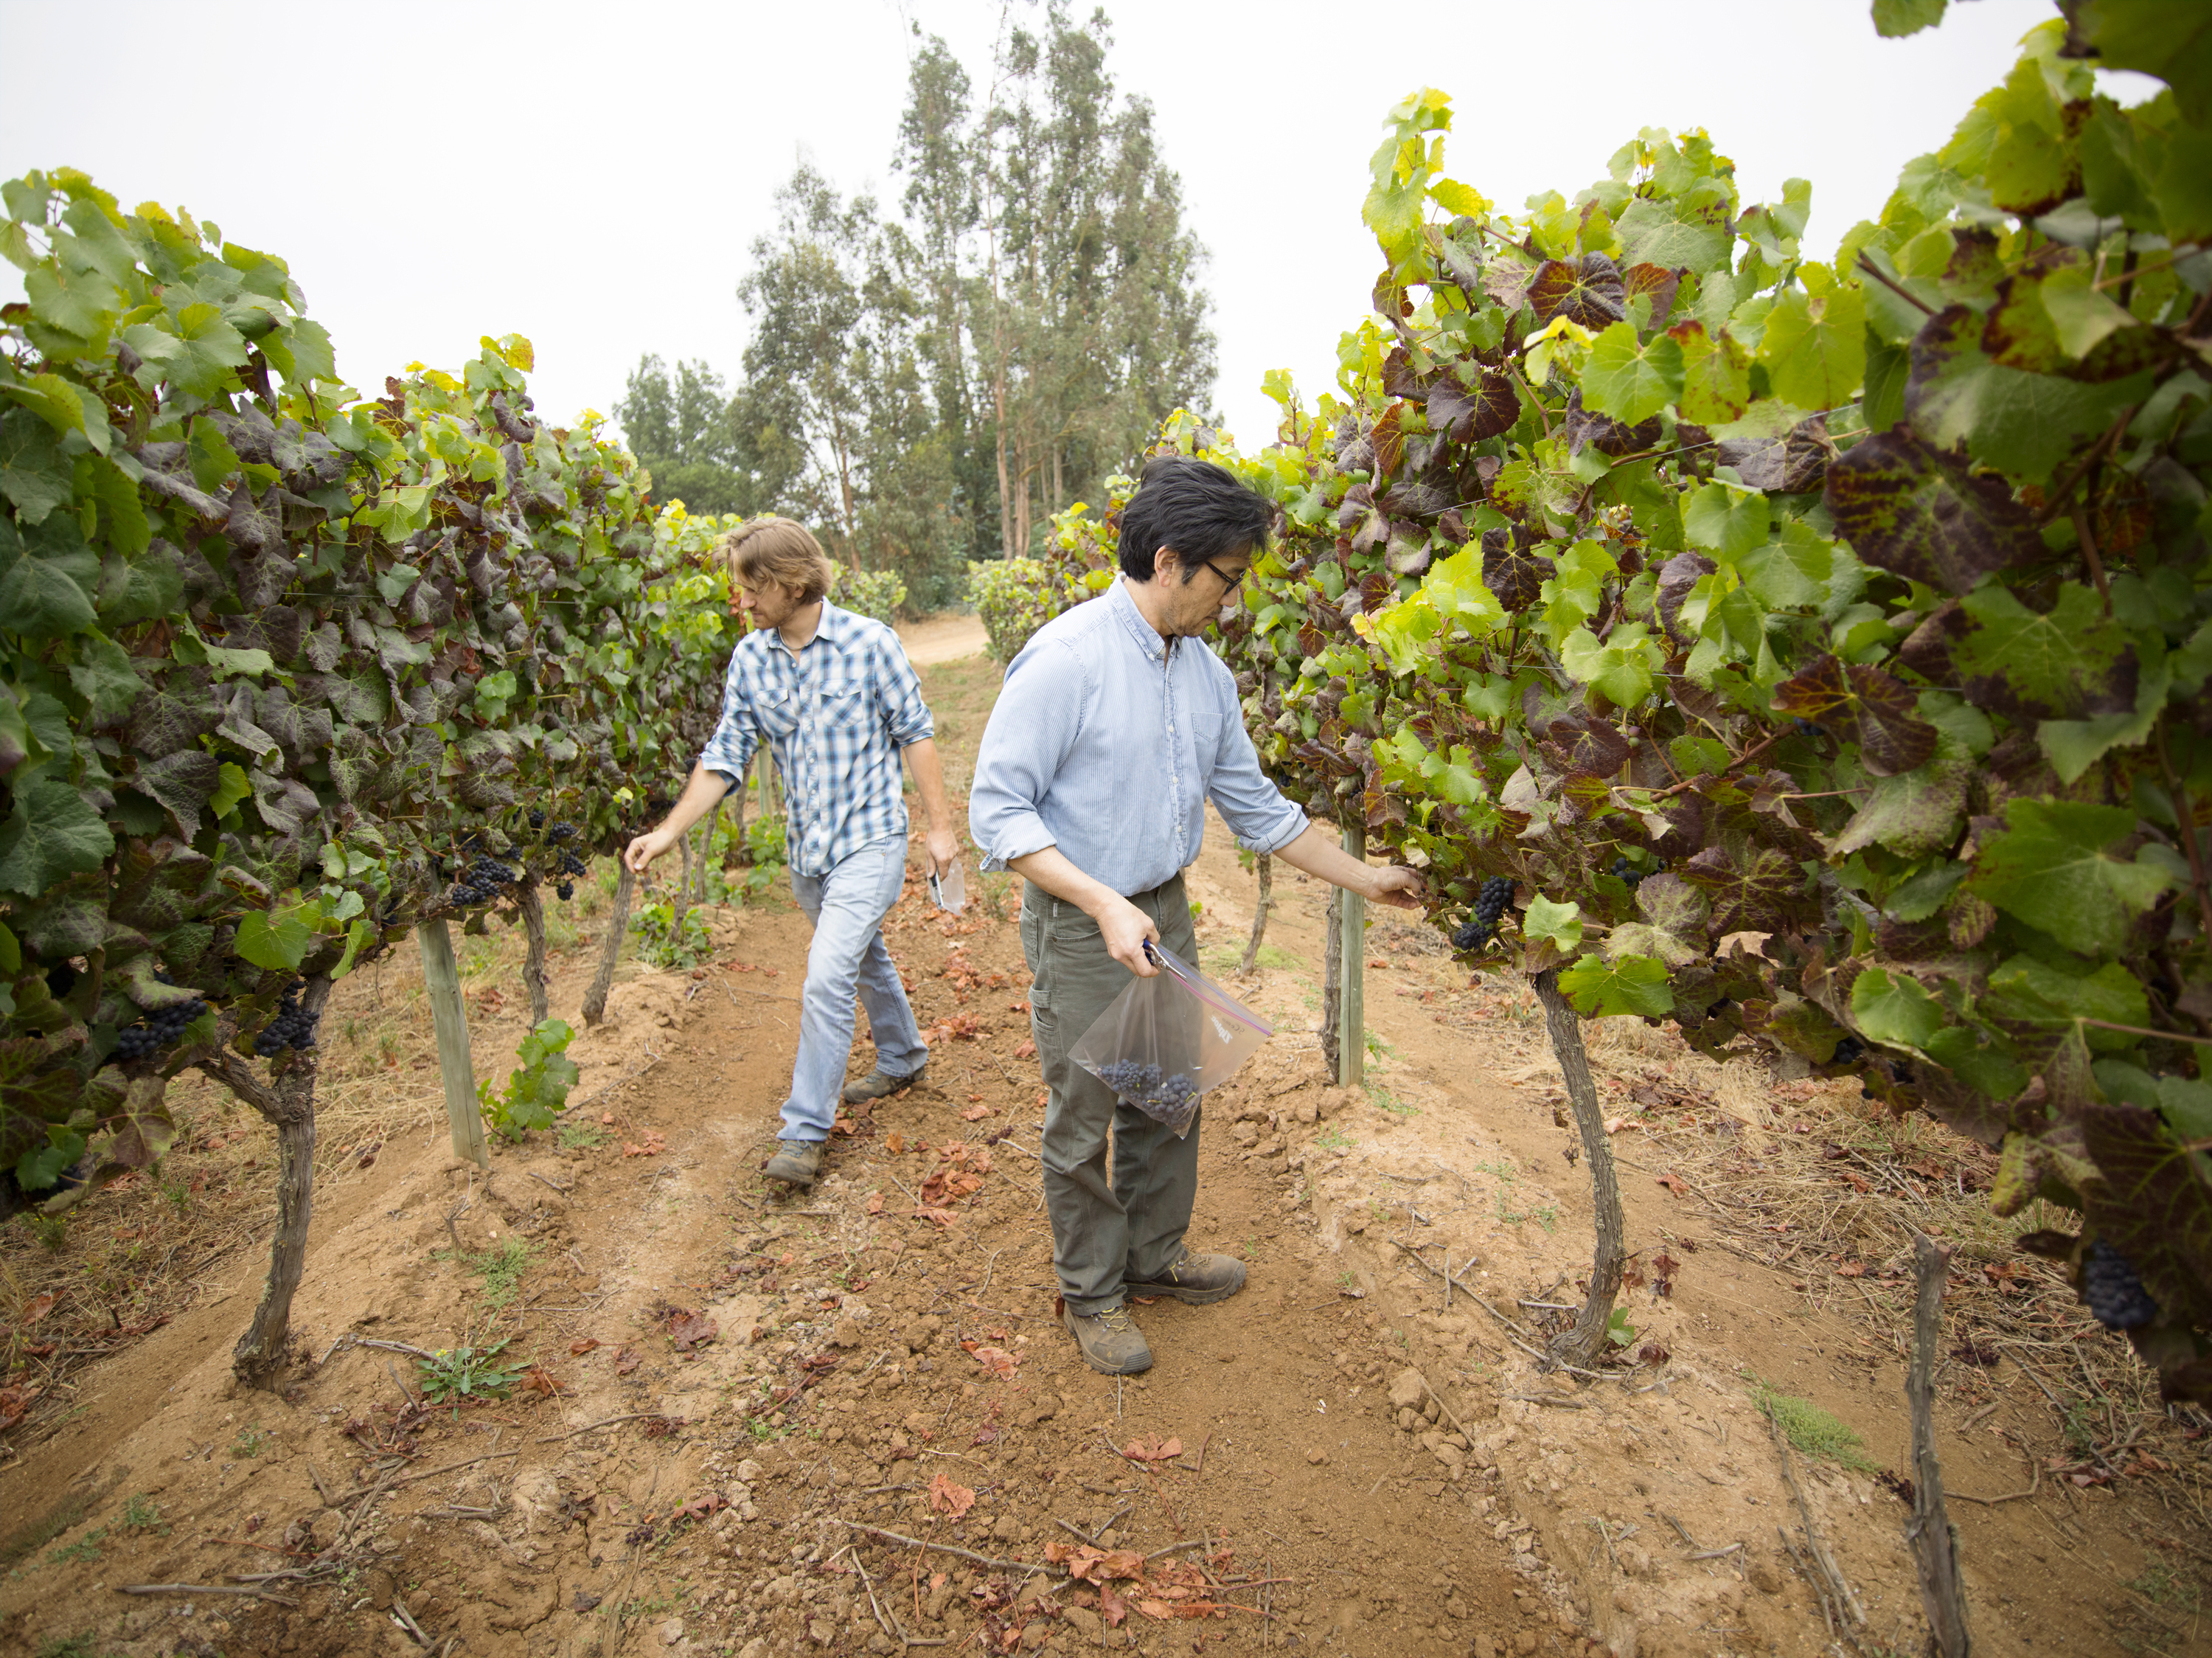 Amael and Byron walk the vineyard, taste grapes, and decide what day to harvest that week.